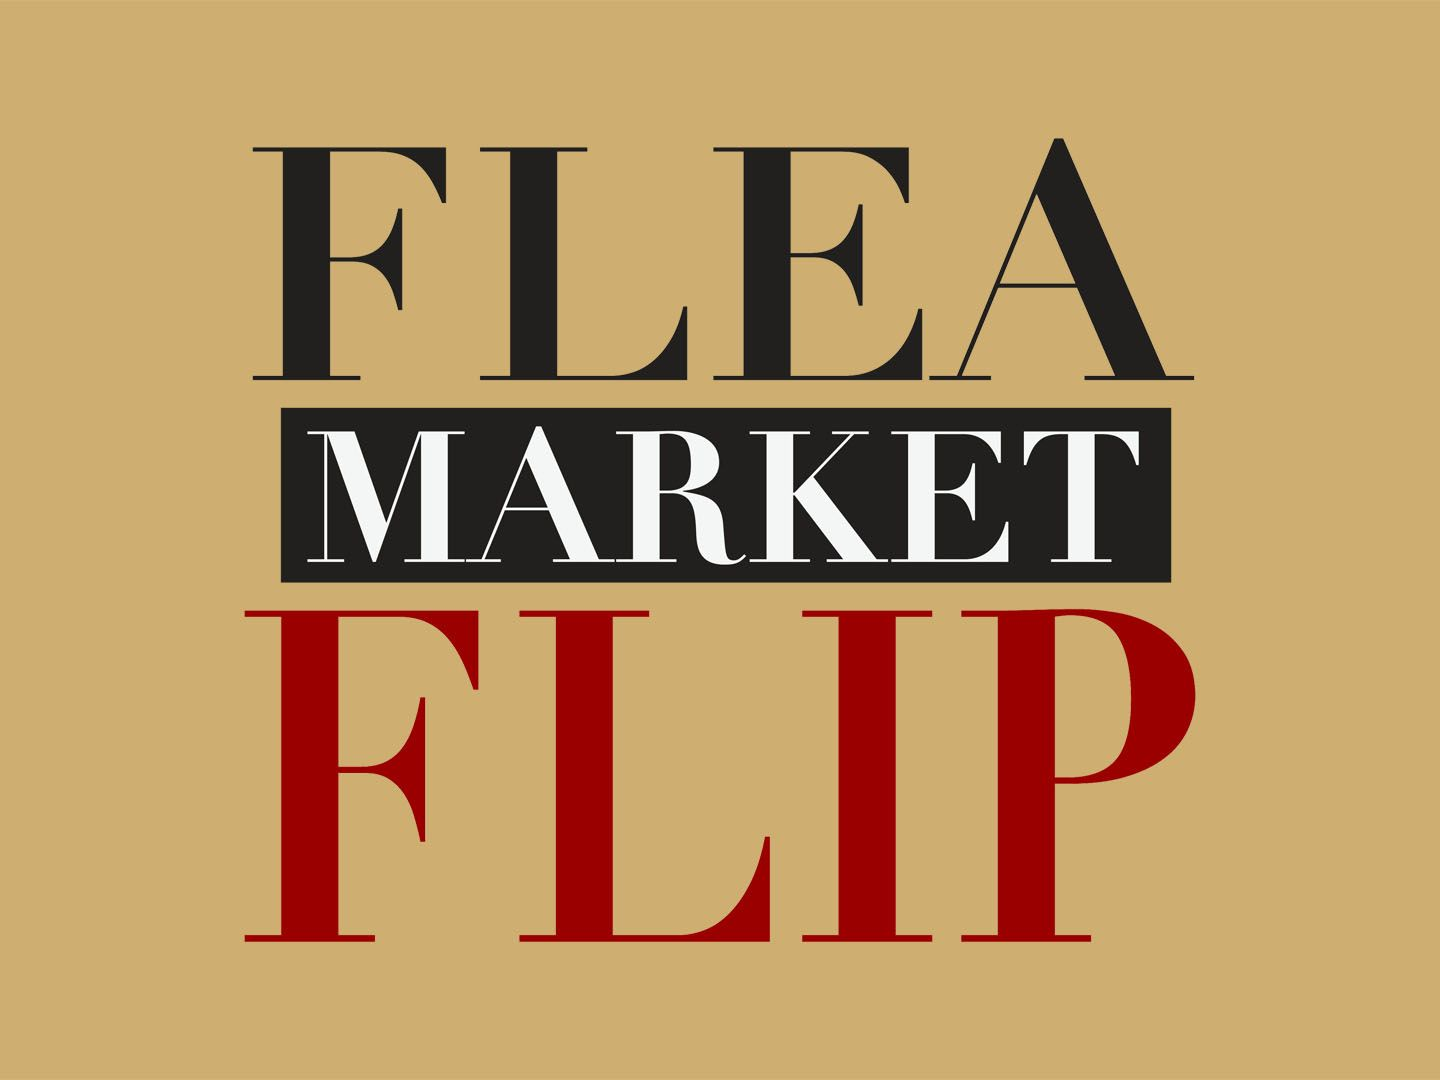 Tv Listings Find Local Tv Listings And Watch Full Episodes Zap2it Com Flea Market Flip Hgtv Flea Market Flip Flea Market